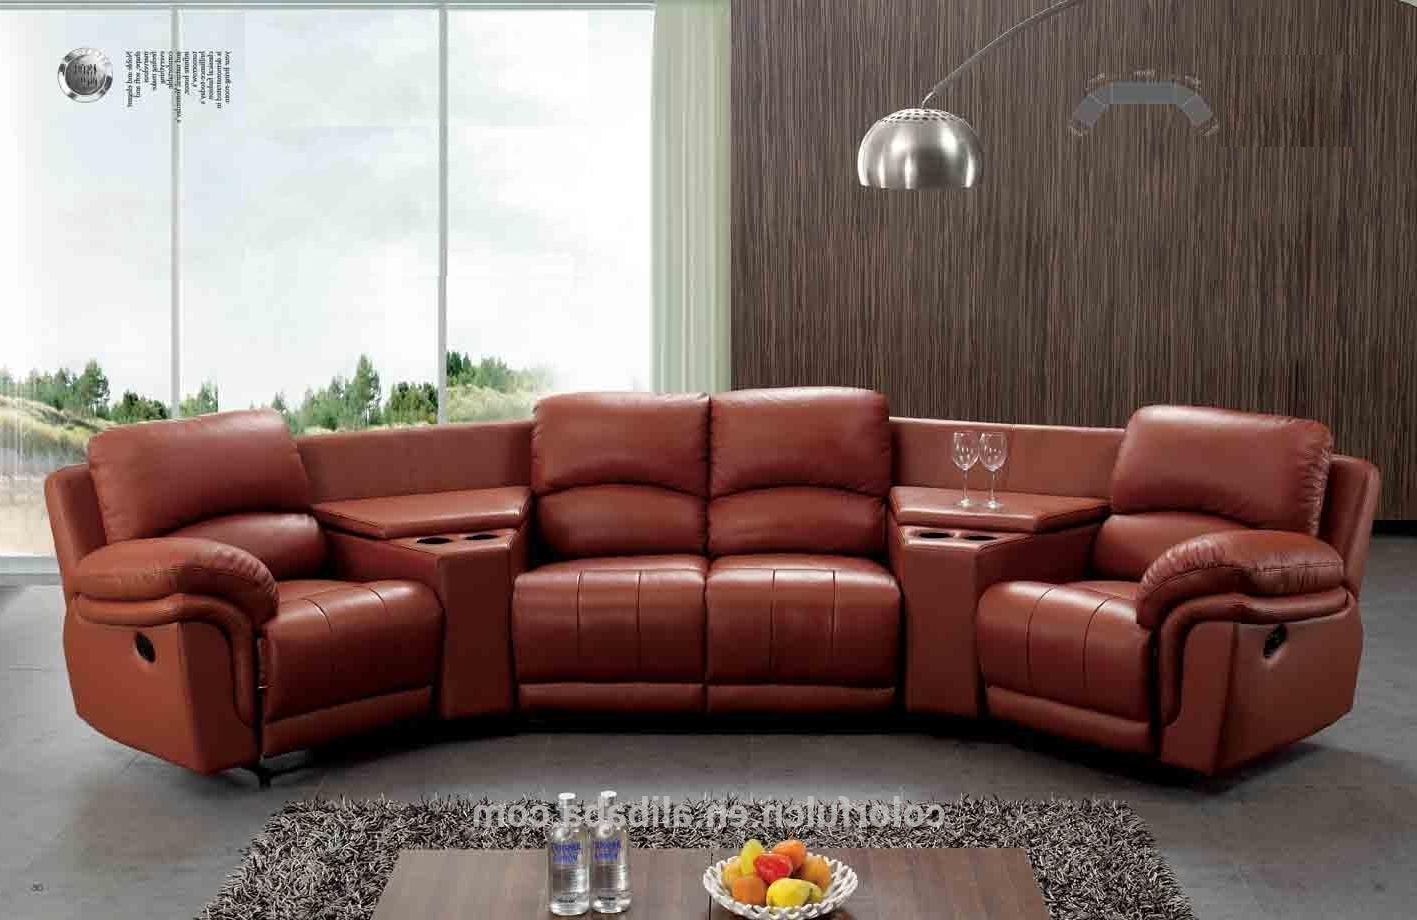 Best And Newest Sectional Sofa Design: Semi Circular Sectional Sofa Couches Round Intended For Semicircular Sofas (View 14 of 20)